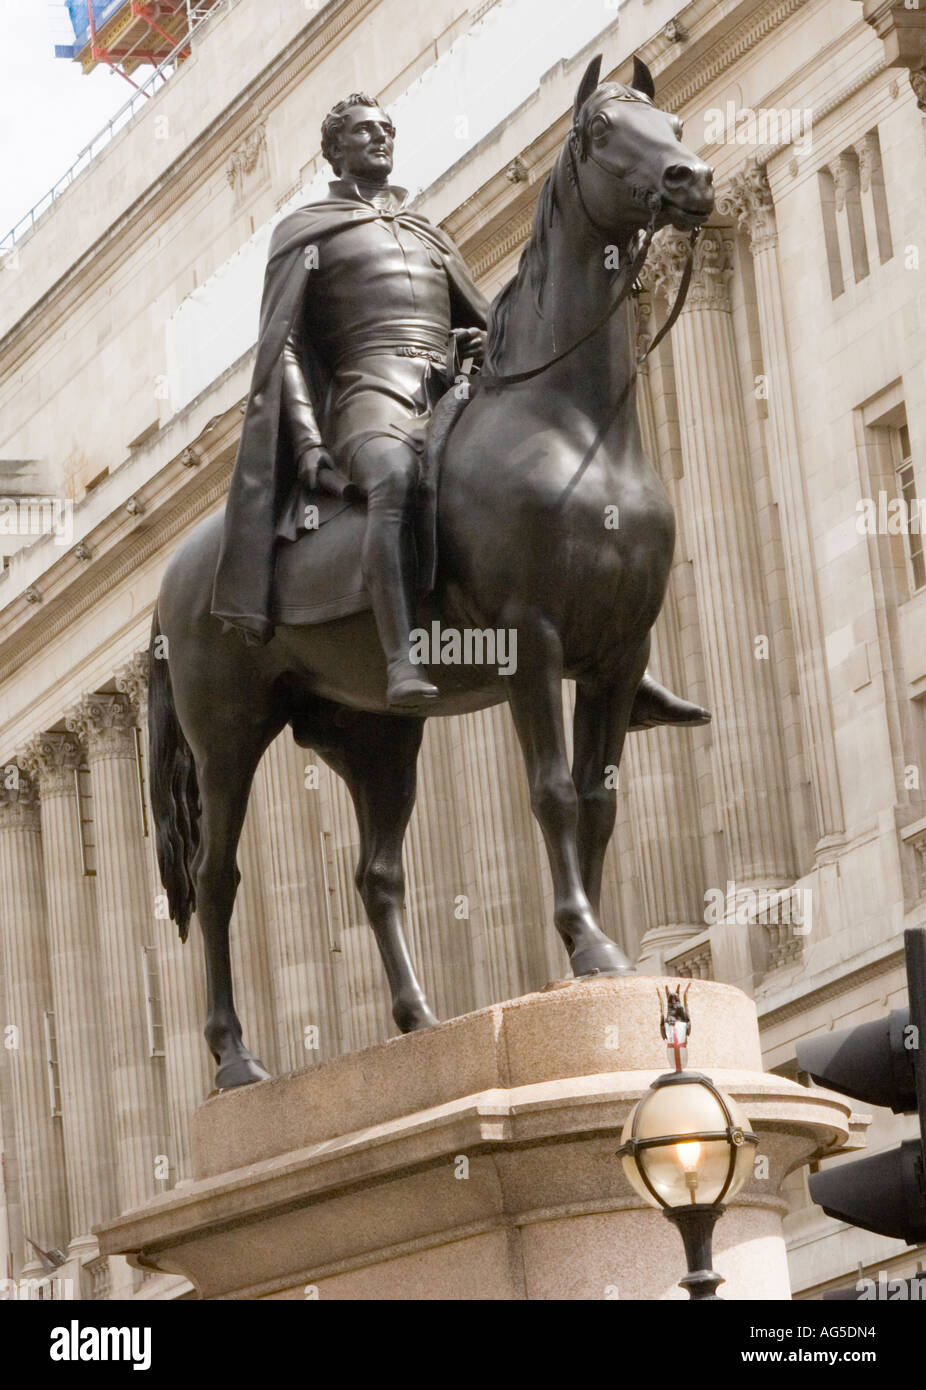 Statue of the Duke of Wellington, started by Frances Chantrey & completed by Henry Weeks, outside The Royal Exchange in the City - Stock Image